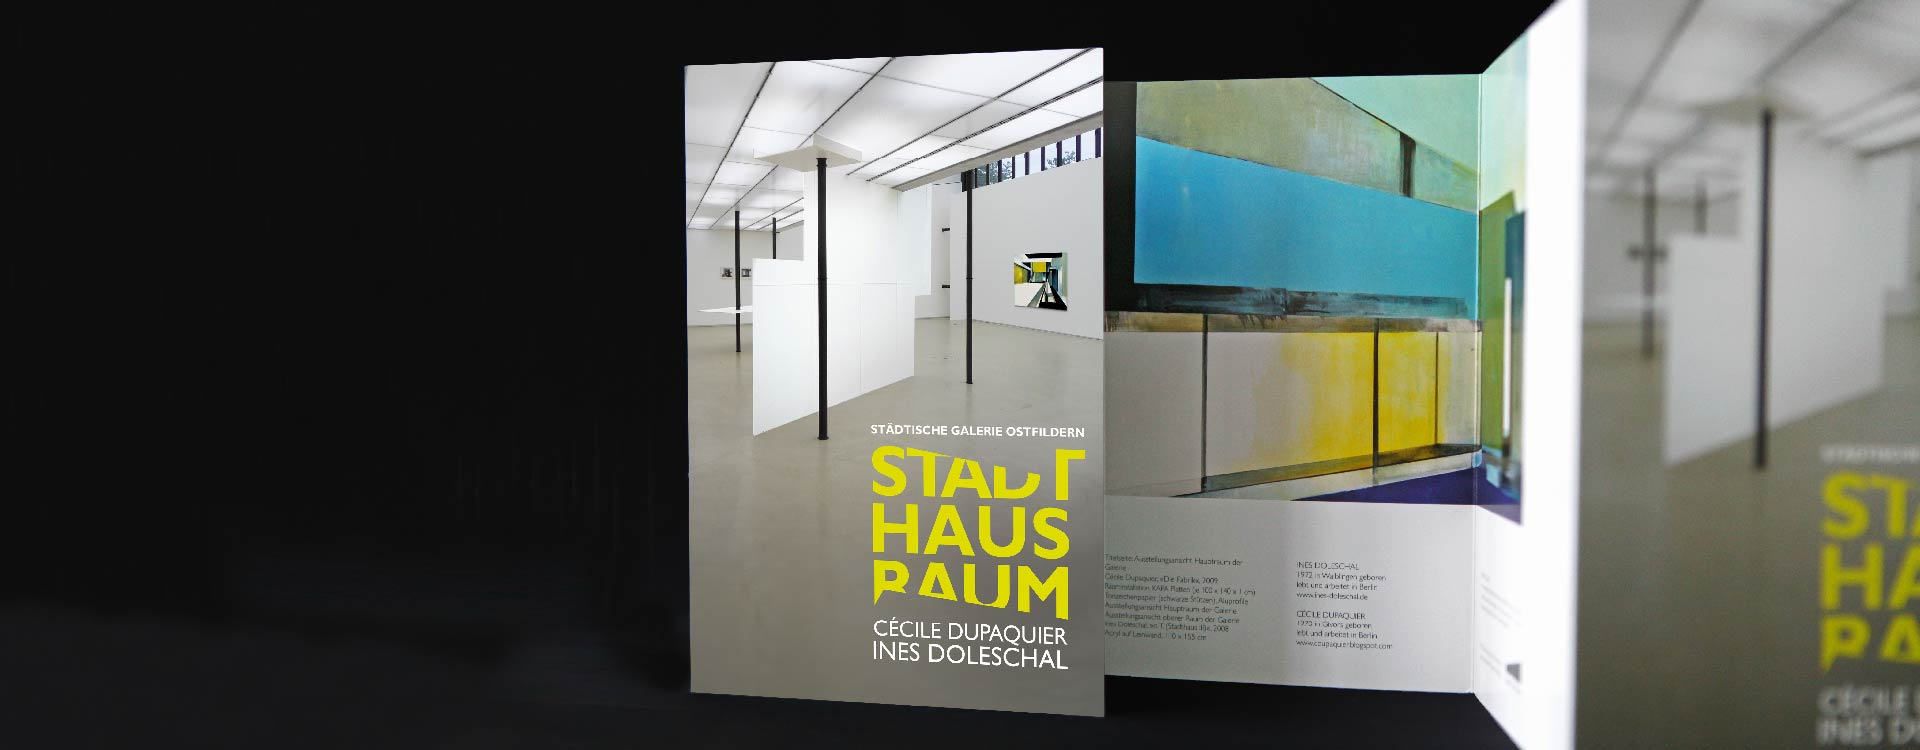 Leaflet for the exhibition StadtHausRaum with Ines Doleschal and Cécile Dupaquier in the Ostfildern Town Gallery; Design: Kattrin Richter | Graphic Design Studio